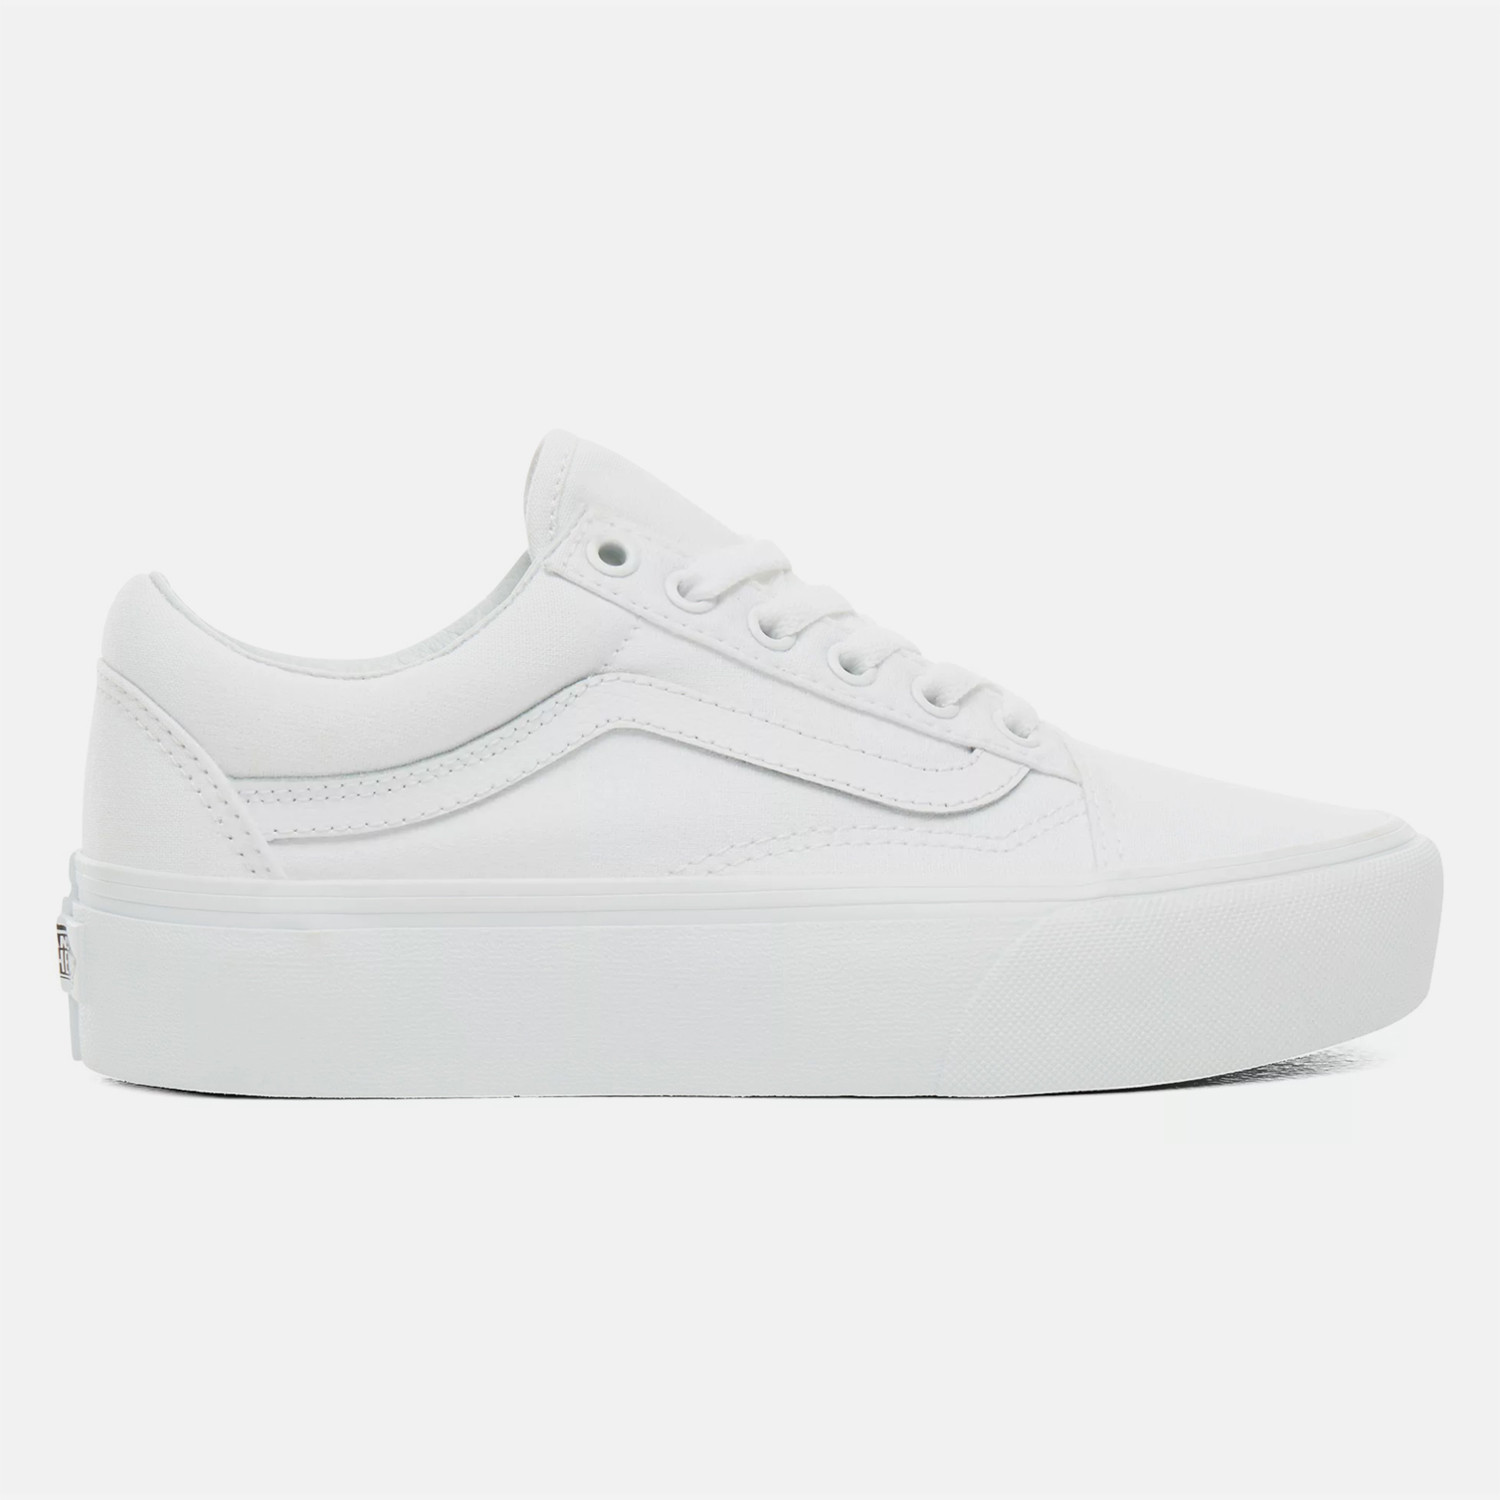 Vans Old Skool Platform Women's Shoes (9000049061_6585)